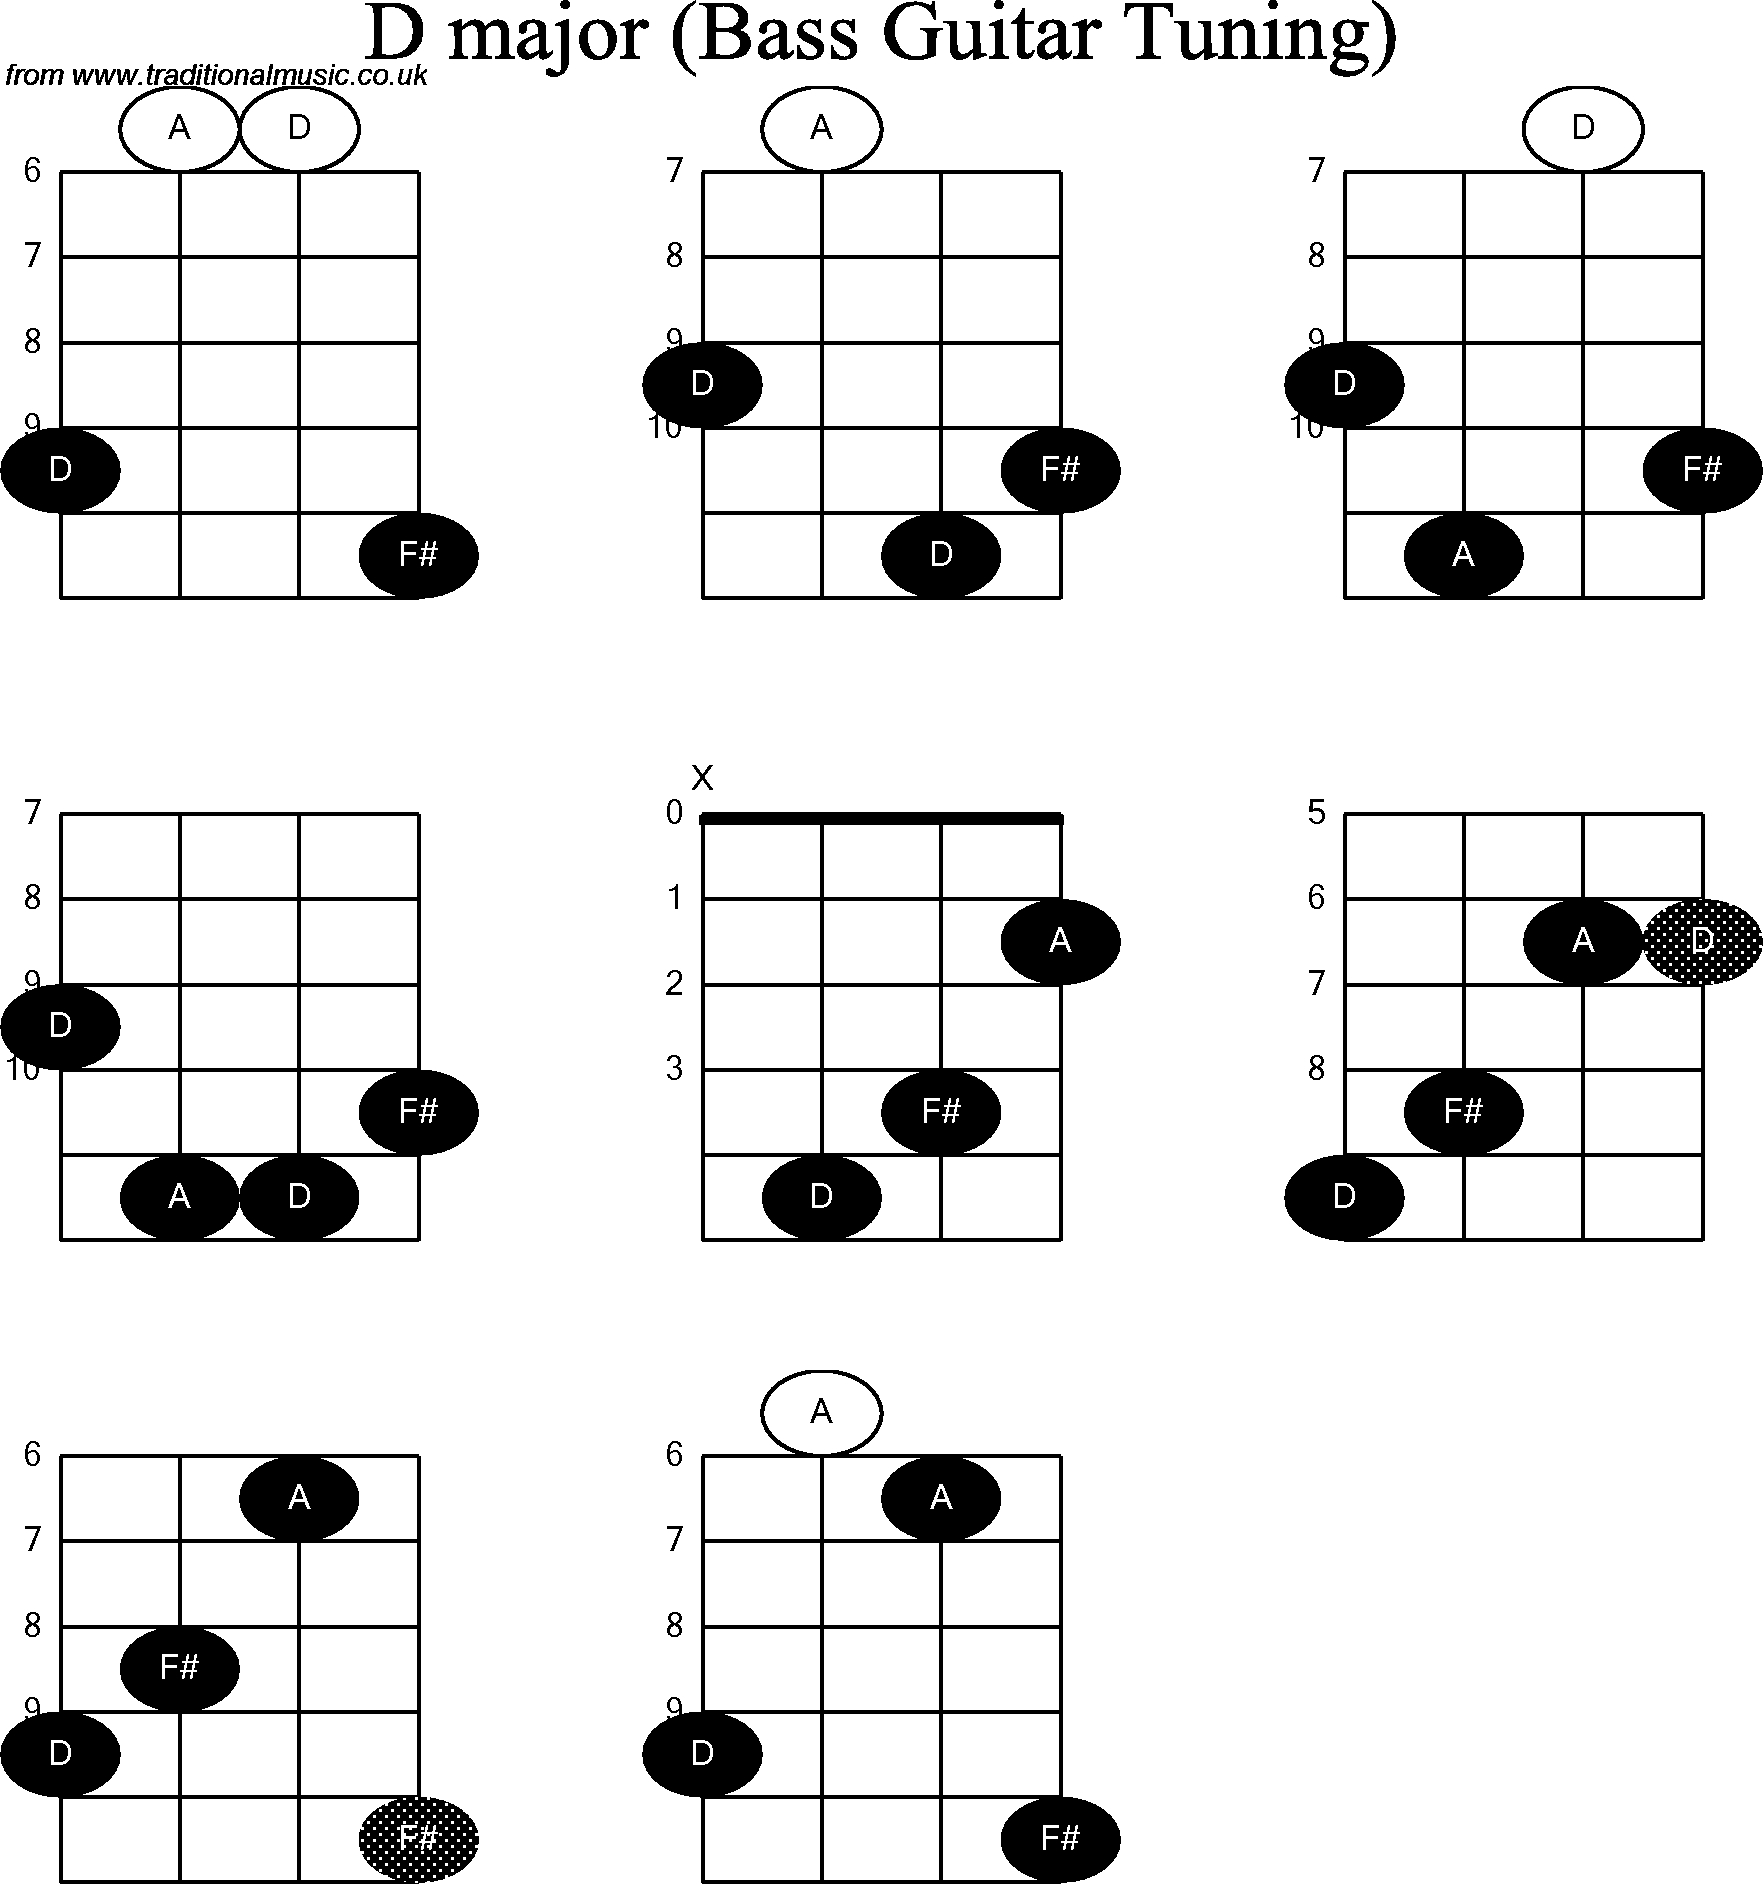 Bass Guitar Chords Bass Guitar Chord Diagrams For D